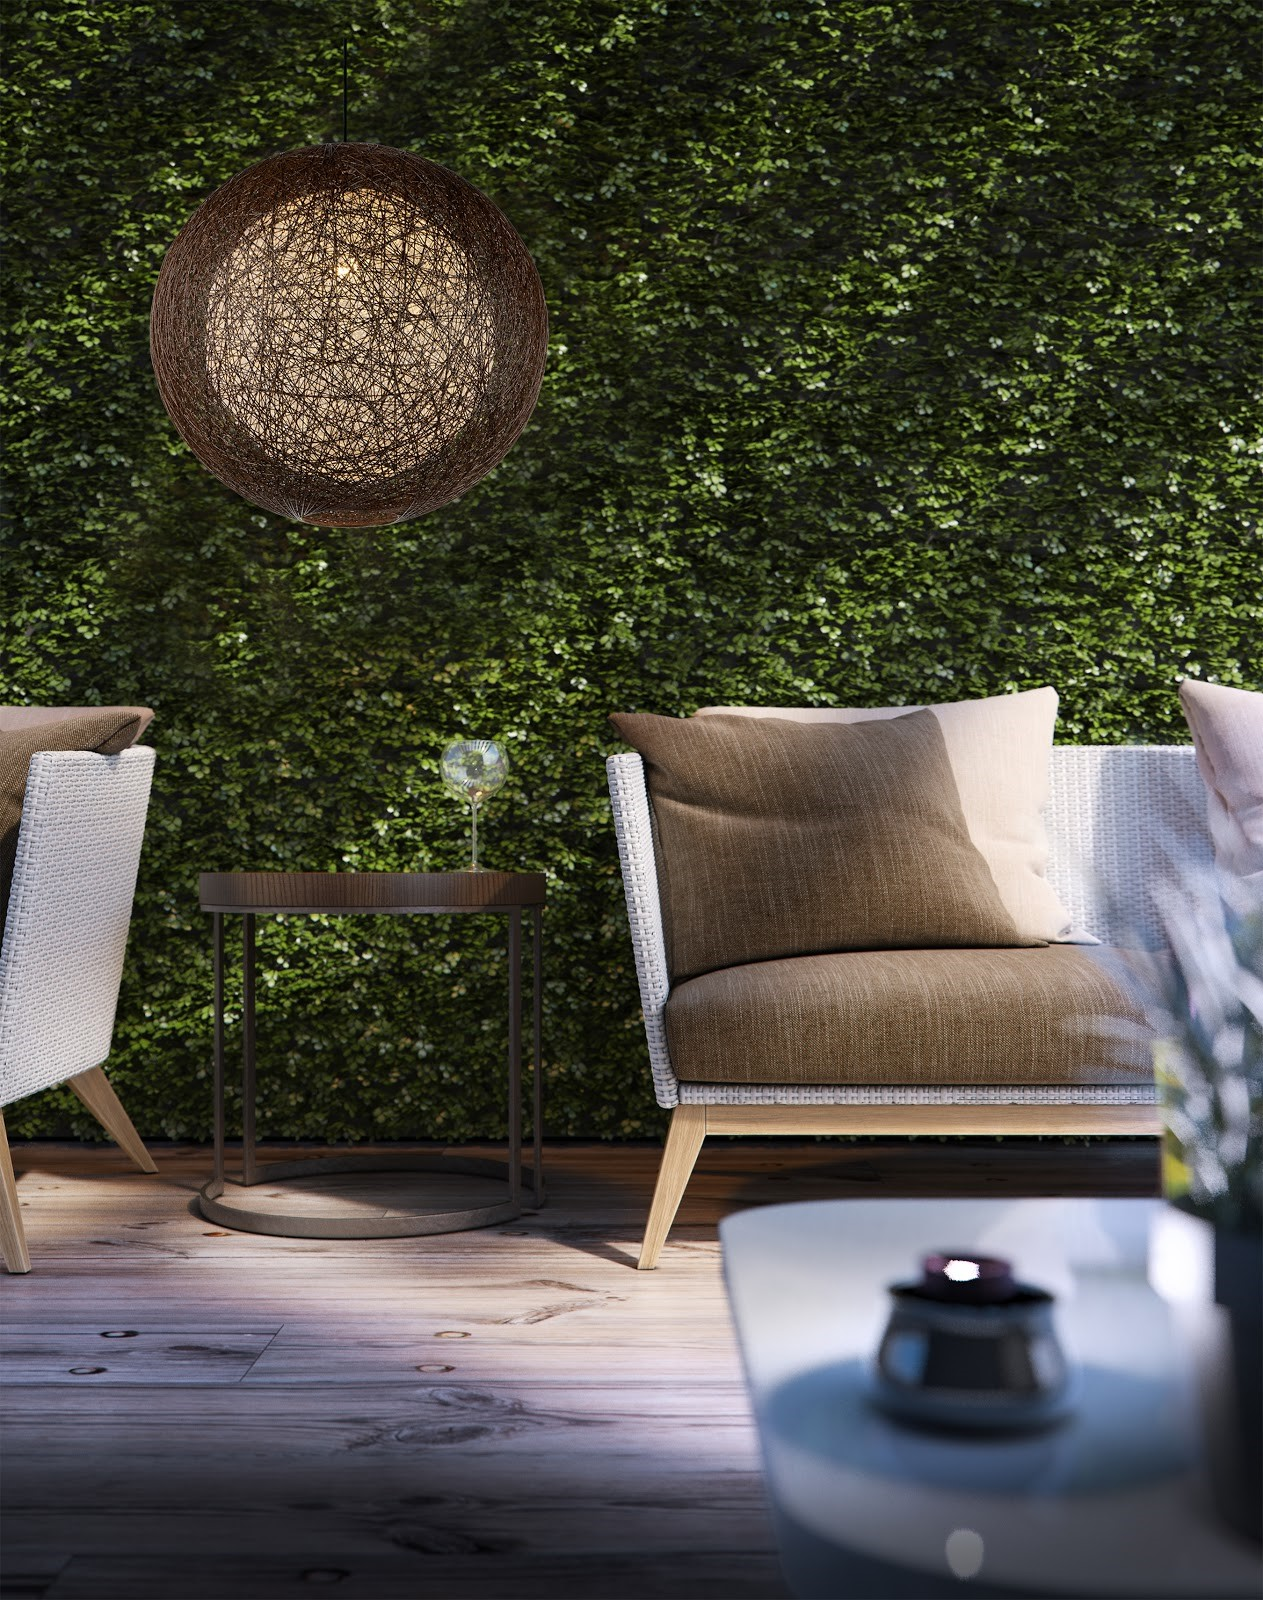 3 Best Lighting Fixtures to Illuminate Your Patio or Space bushes